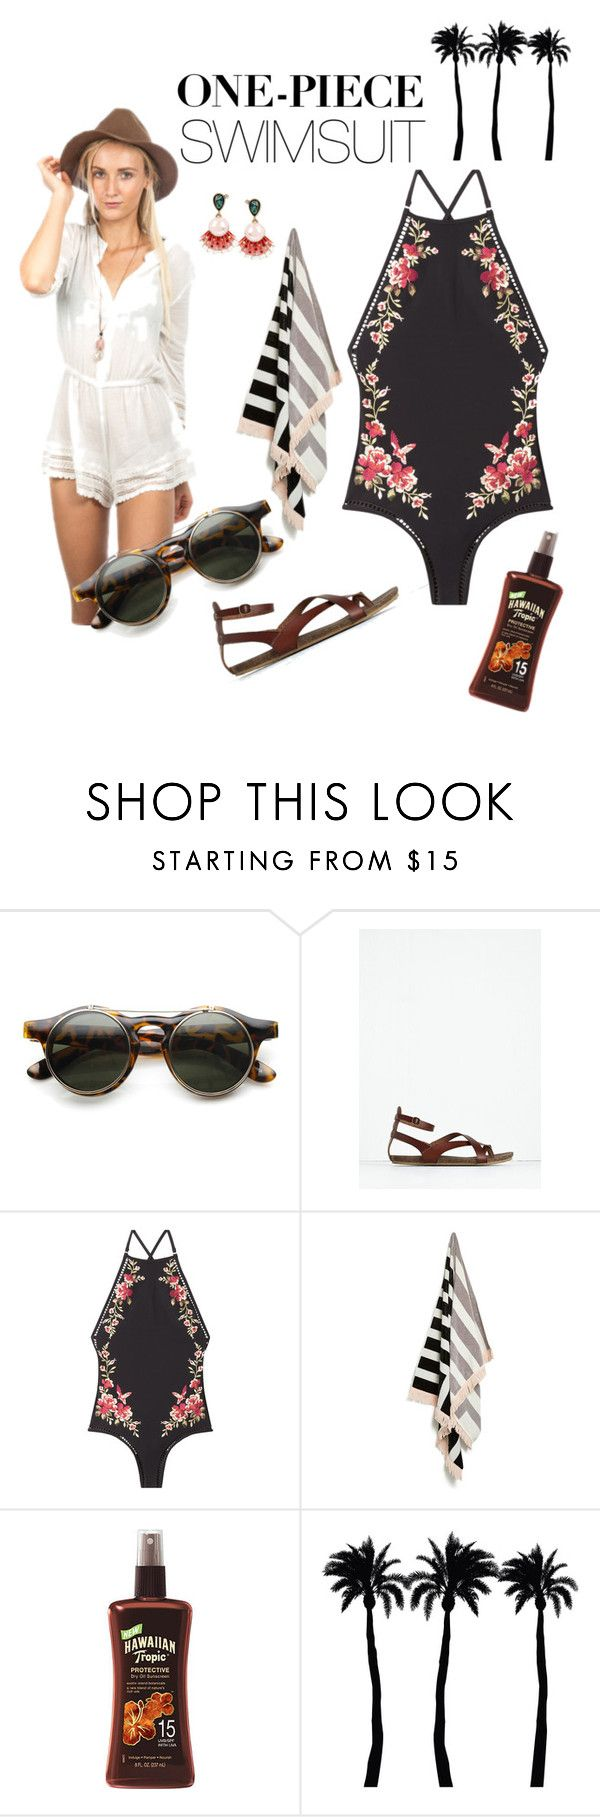 """""""Boho Beach Luxe"""" by foreignhearts on Polyvore featuring Zimmermann, Dot & Bo, Betsey Johnson and onepieceswimsuit"""